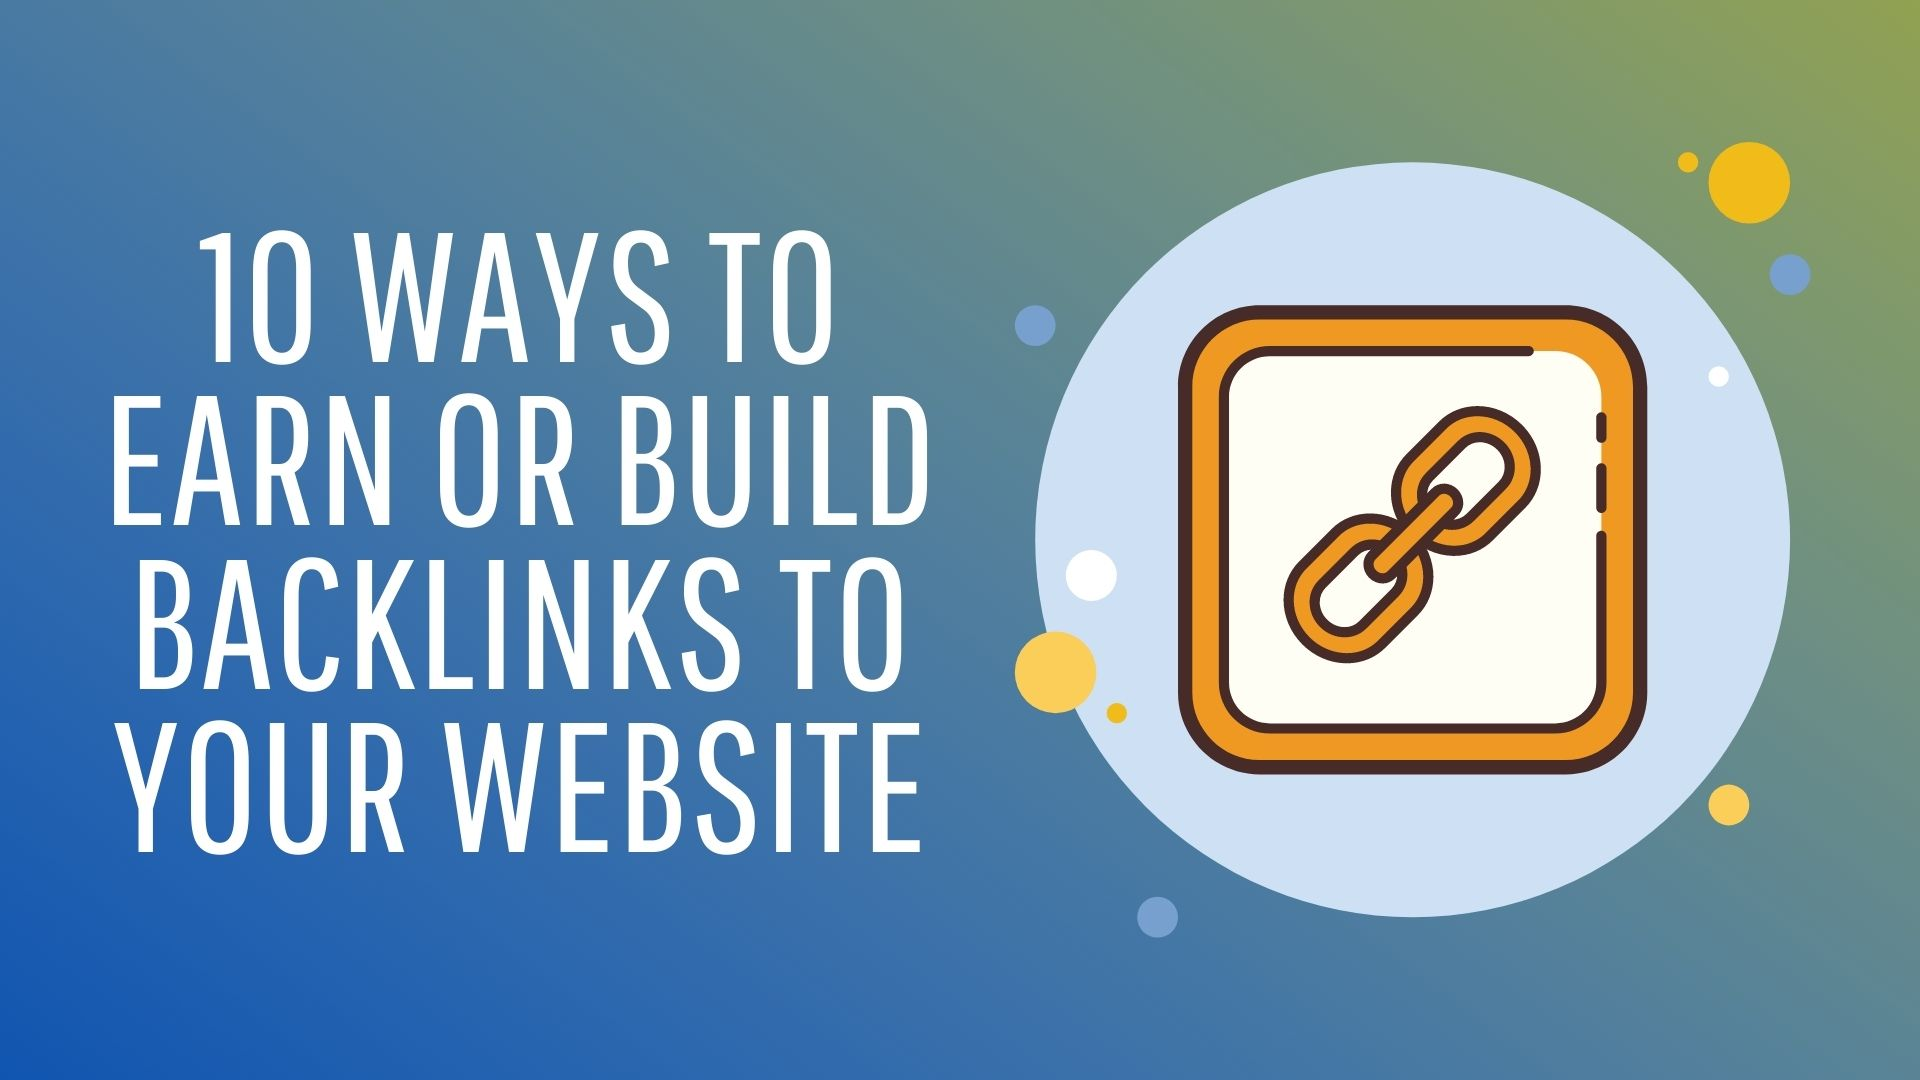 10 WAYS TO EARN OR BUILD BACKLINKS TO YOUR WEBSITE